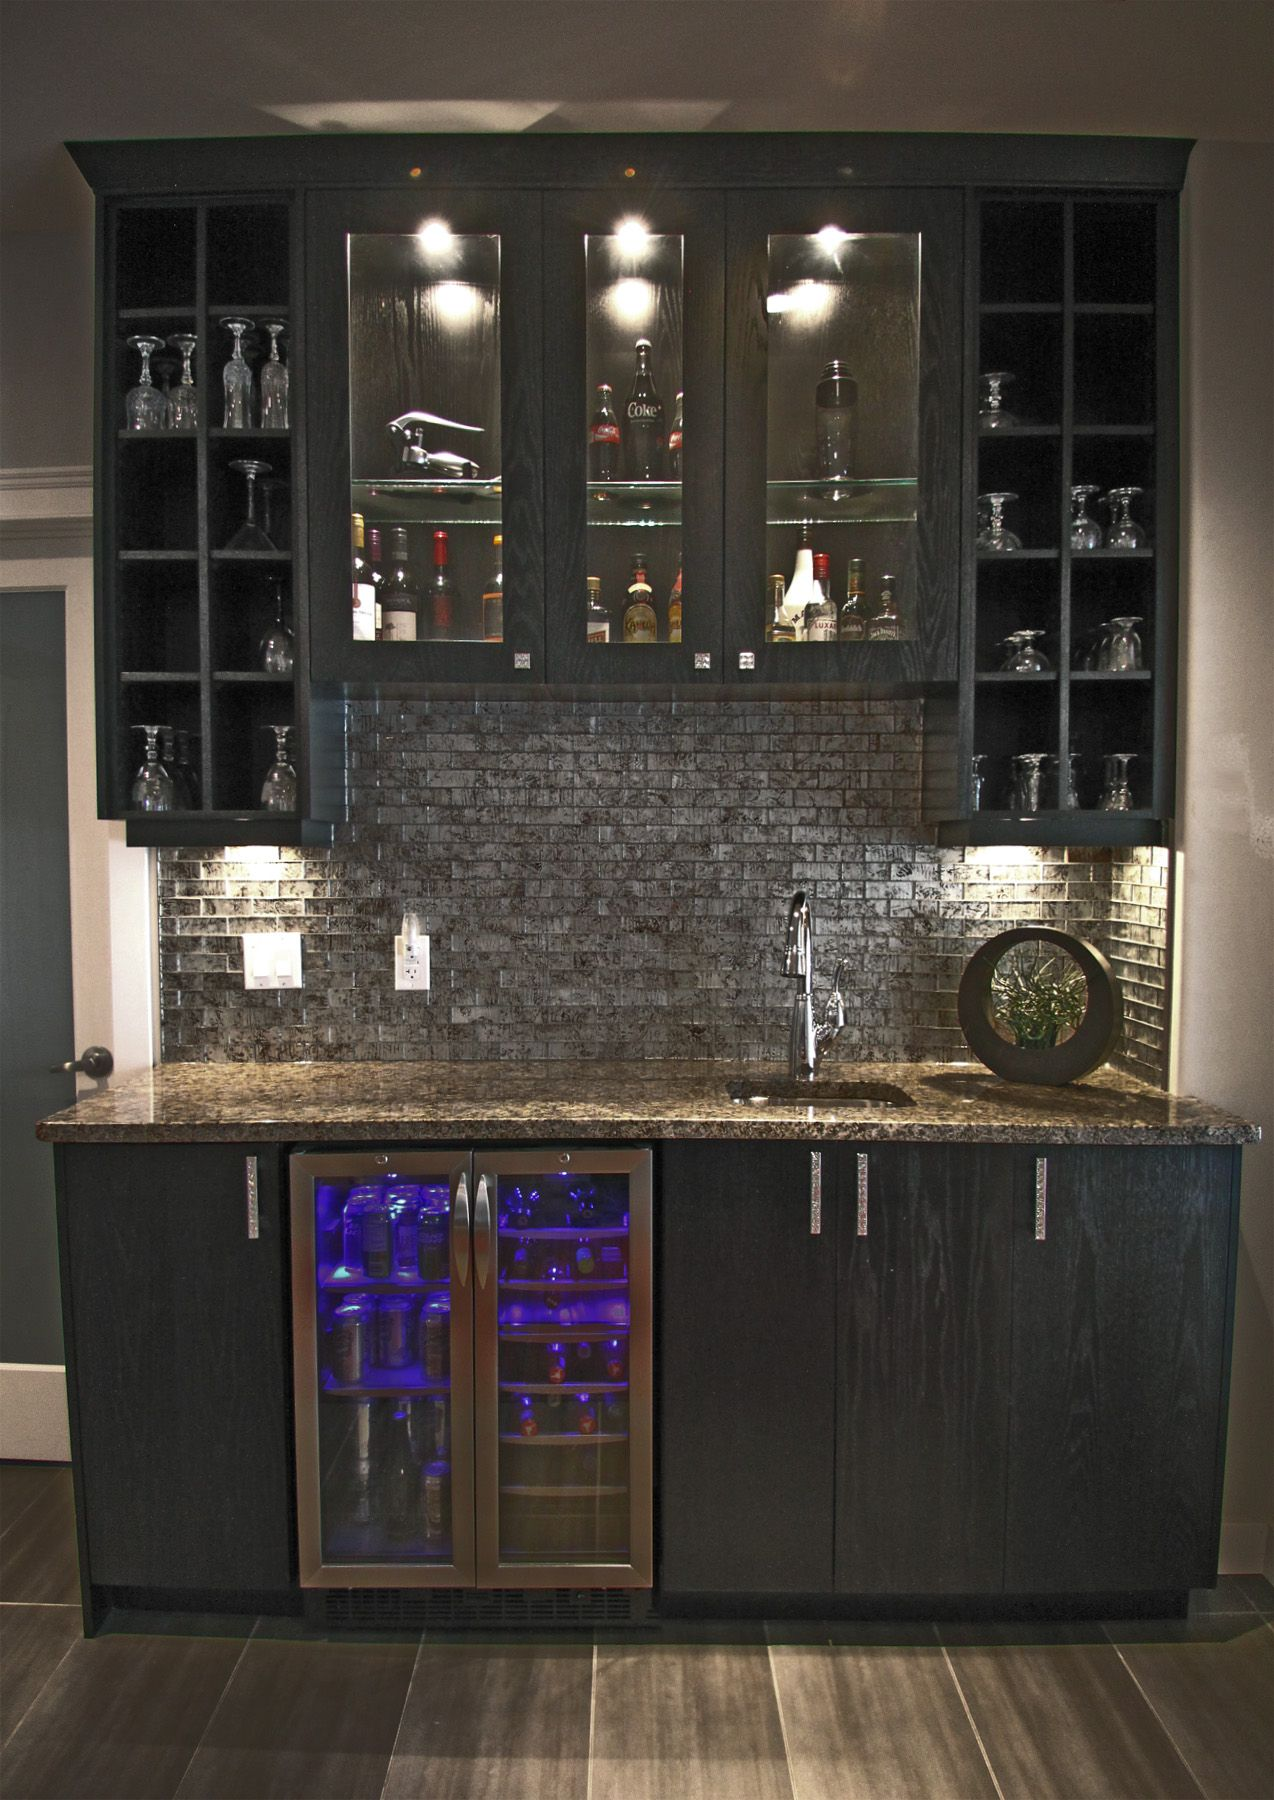 Home Wet Bar Designs W Glass Backsplash Built In Counter